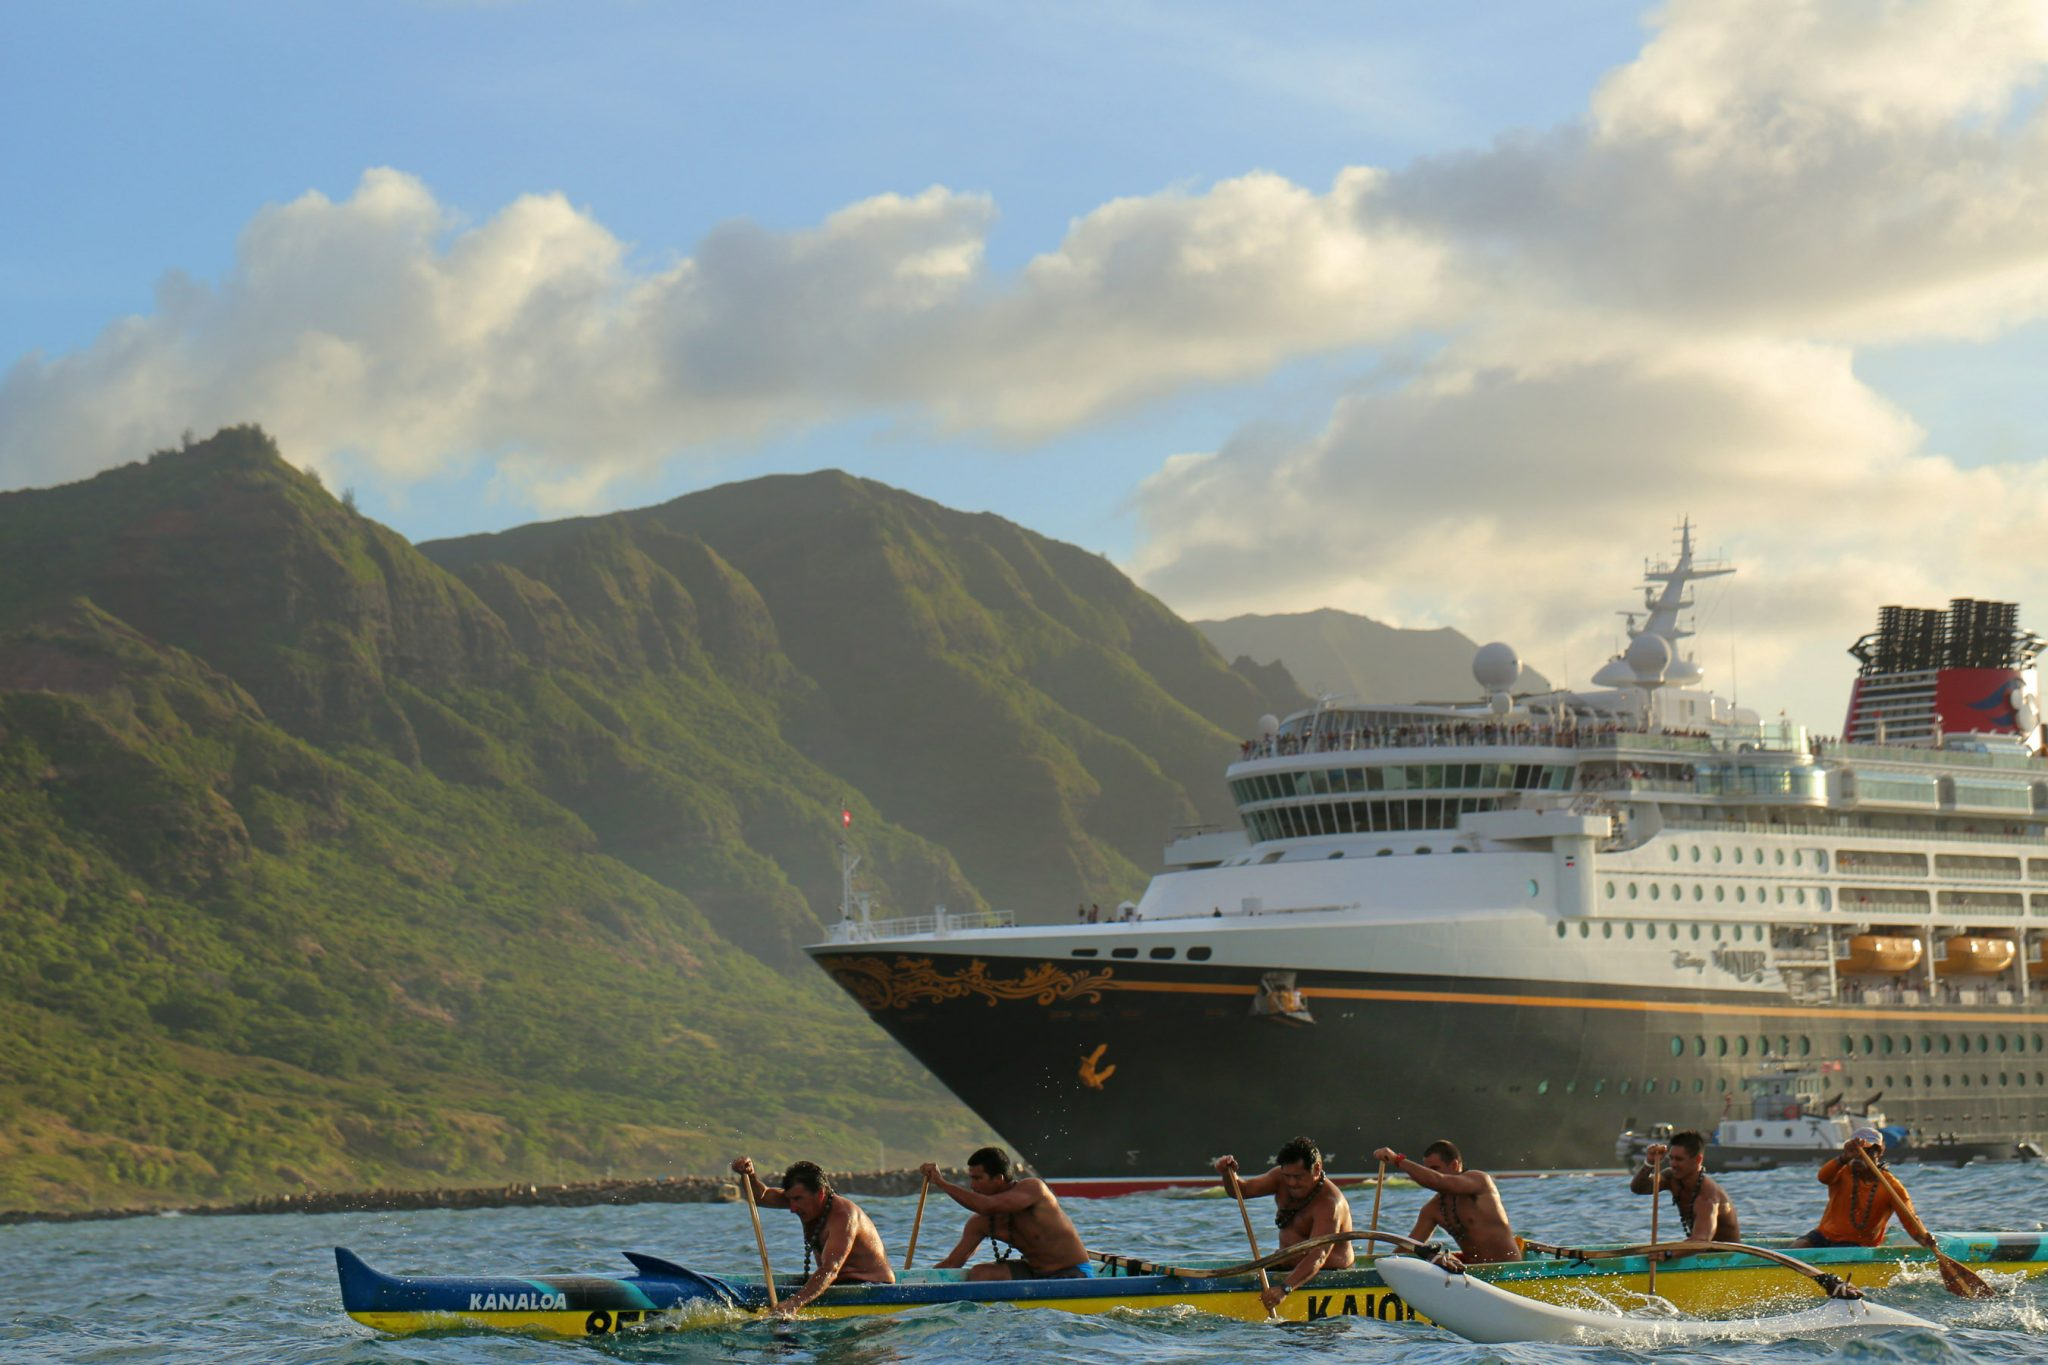 ResortLoop.com Episode 191 – Disney Cruise Line's 2015 Itineraries